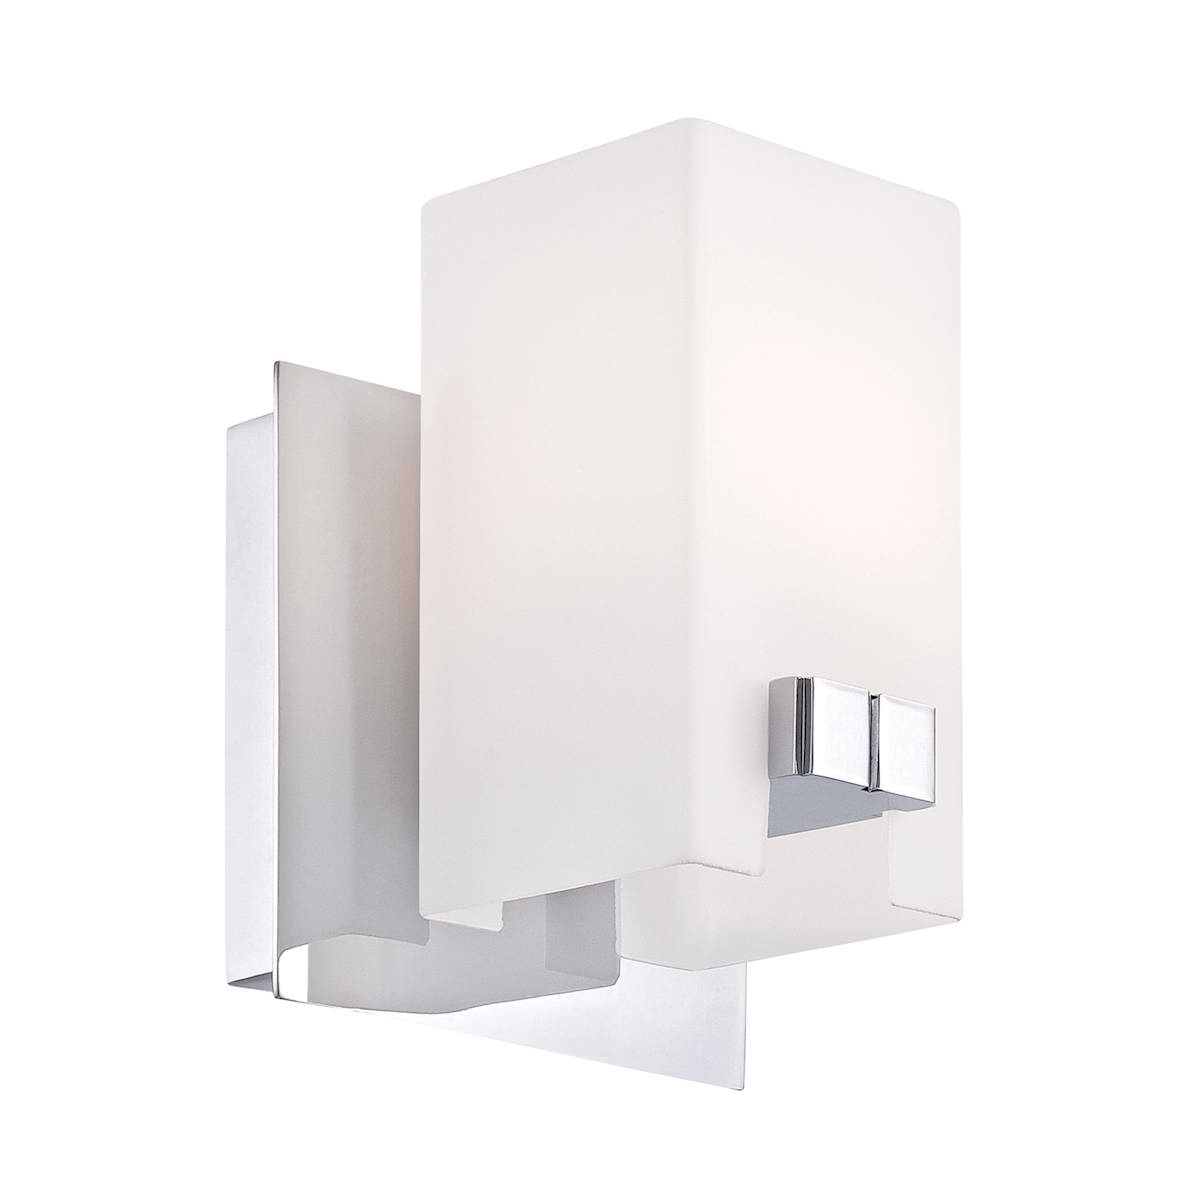 Gemelo Vanity - 1 Light White Opal / Chrome Finish